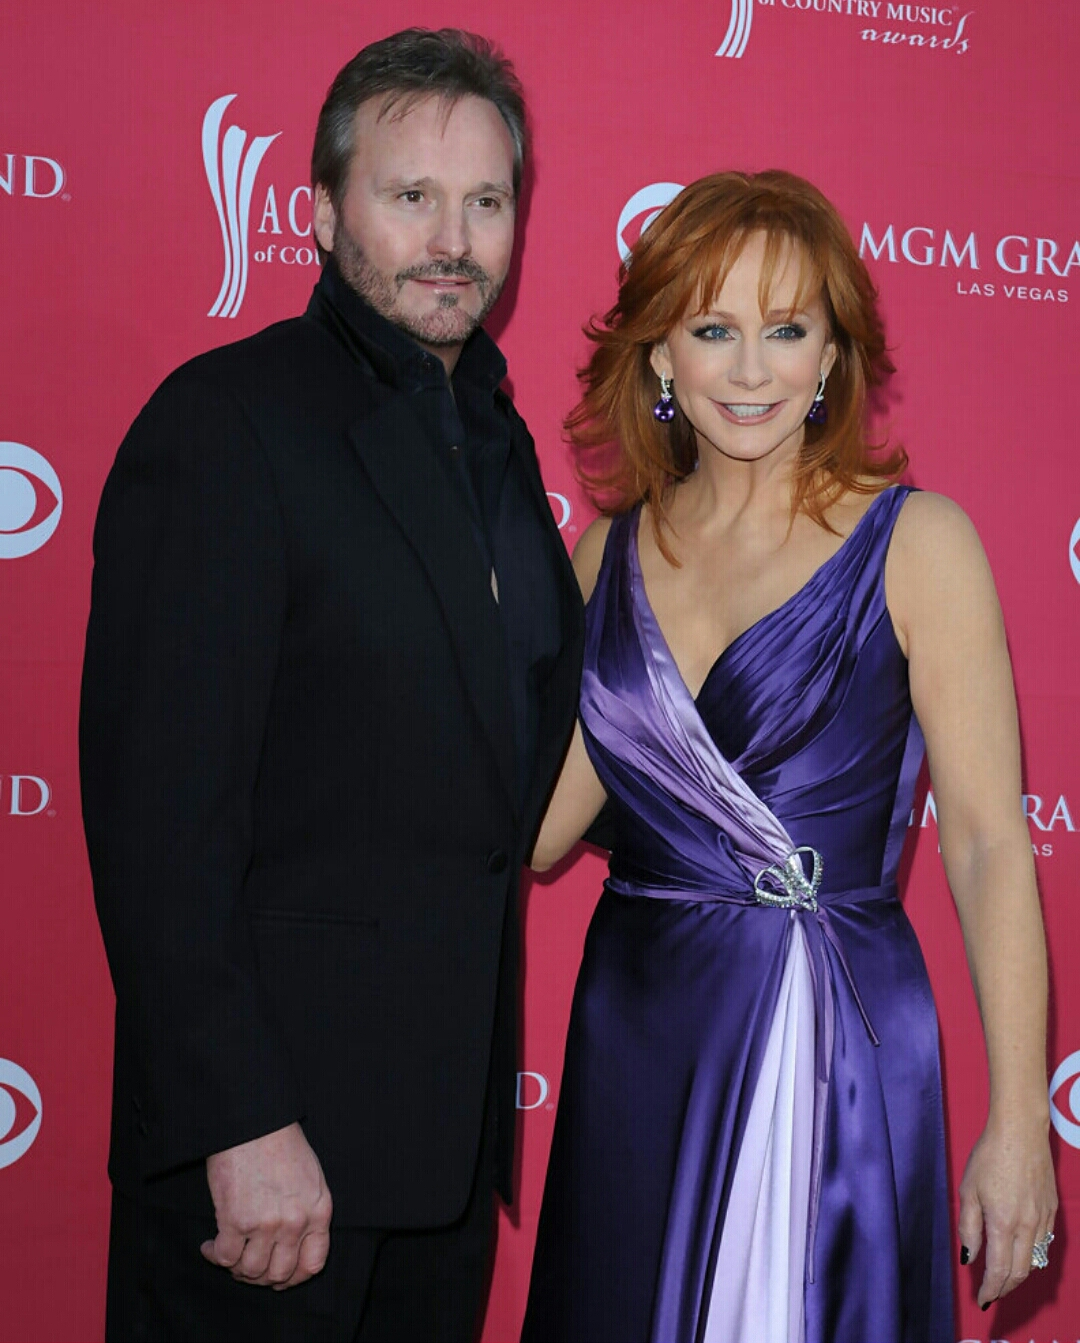 Reba mcentire announces divorce from narvel blackstock for Who is reba mcentire married to now